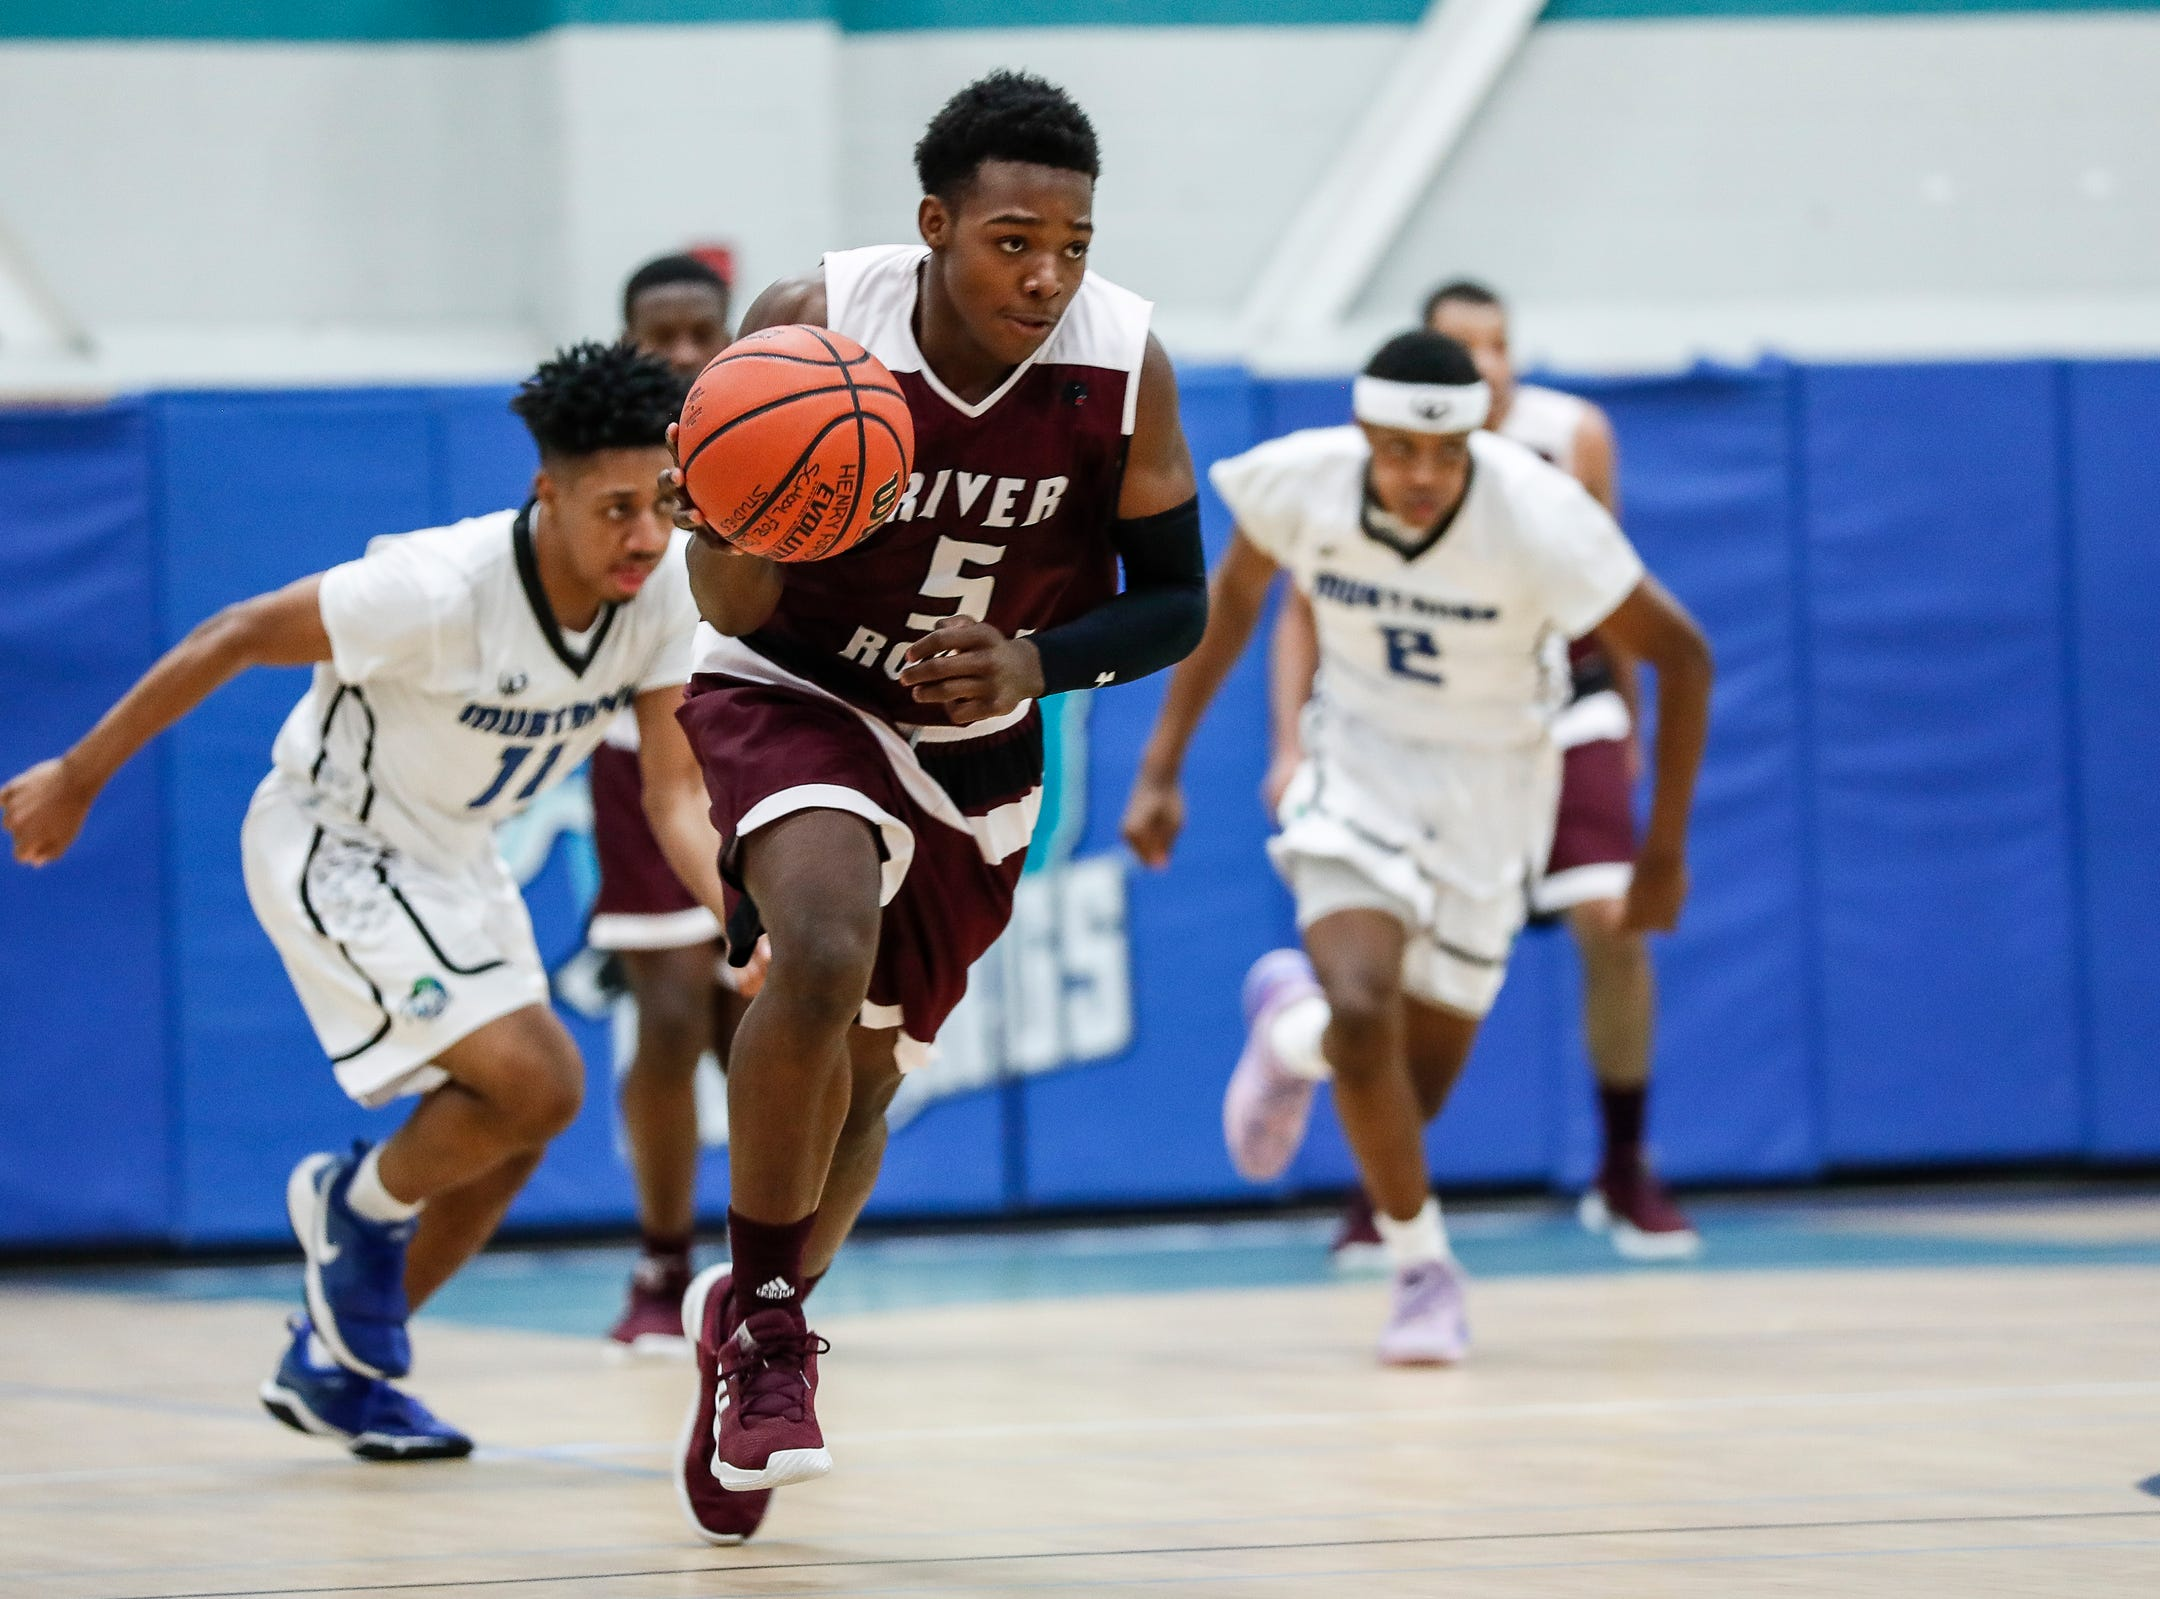 River Rouge's Jason Norton (5) dribbles against Henry Ford Academy: School for Creative Studies during first half at the A. Alfred Taubman Center For Design Education in Detroit, Tuesday, Jan. 8, 2019.